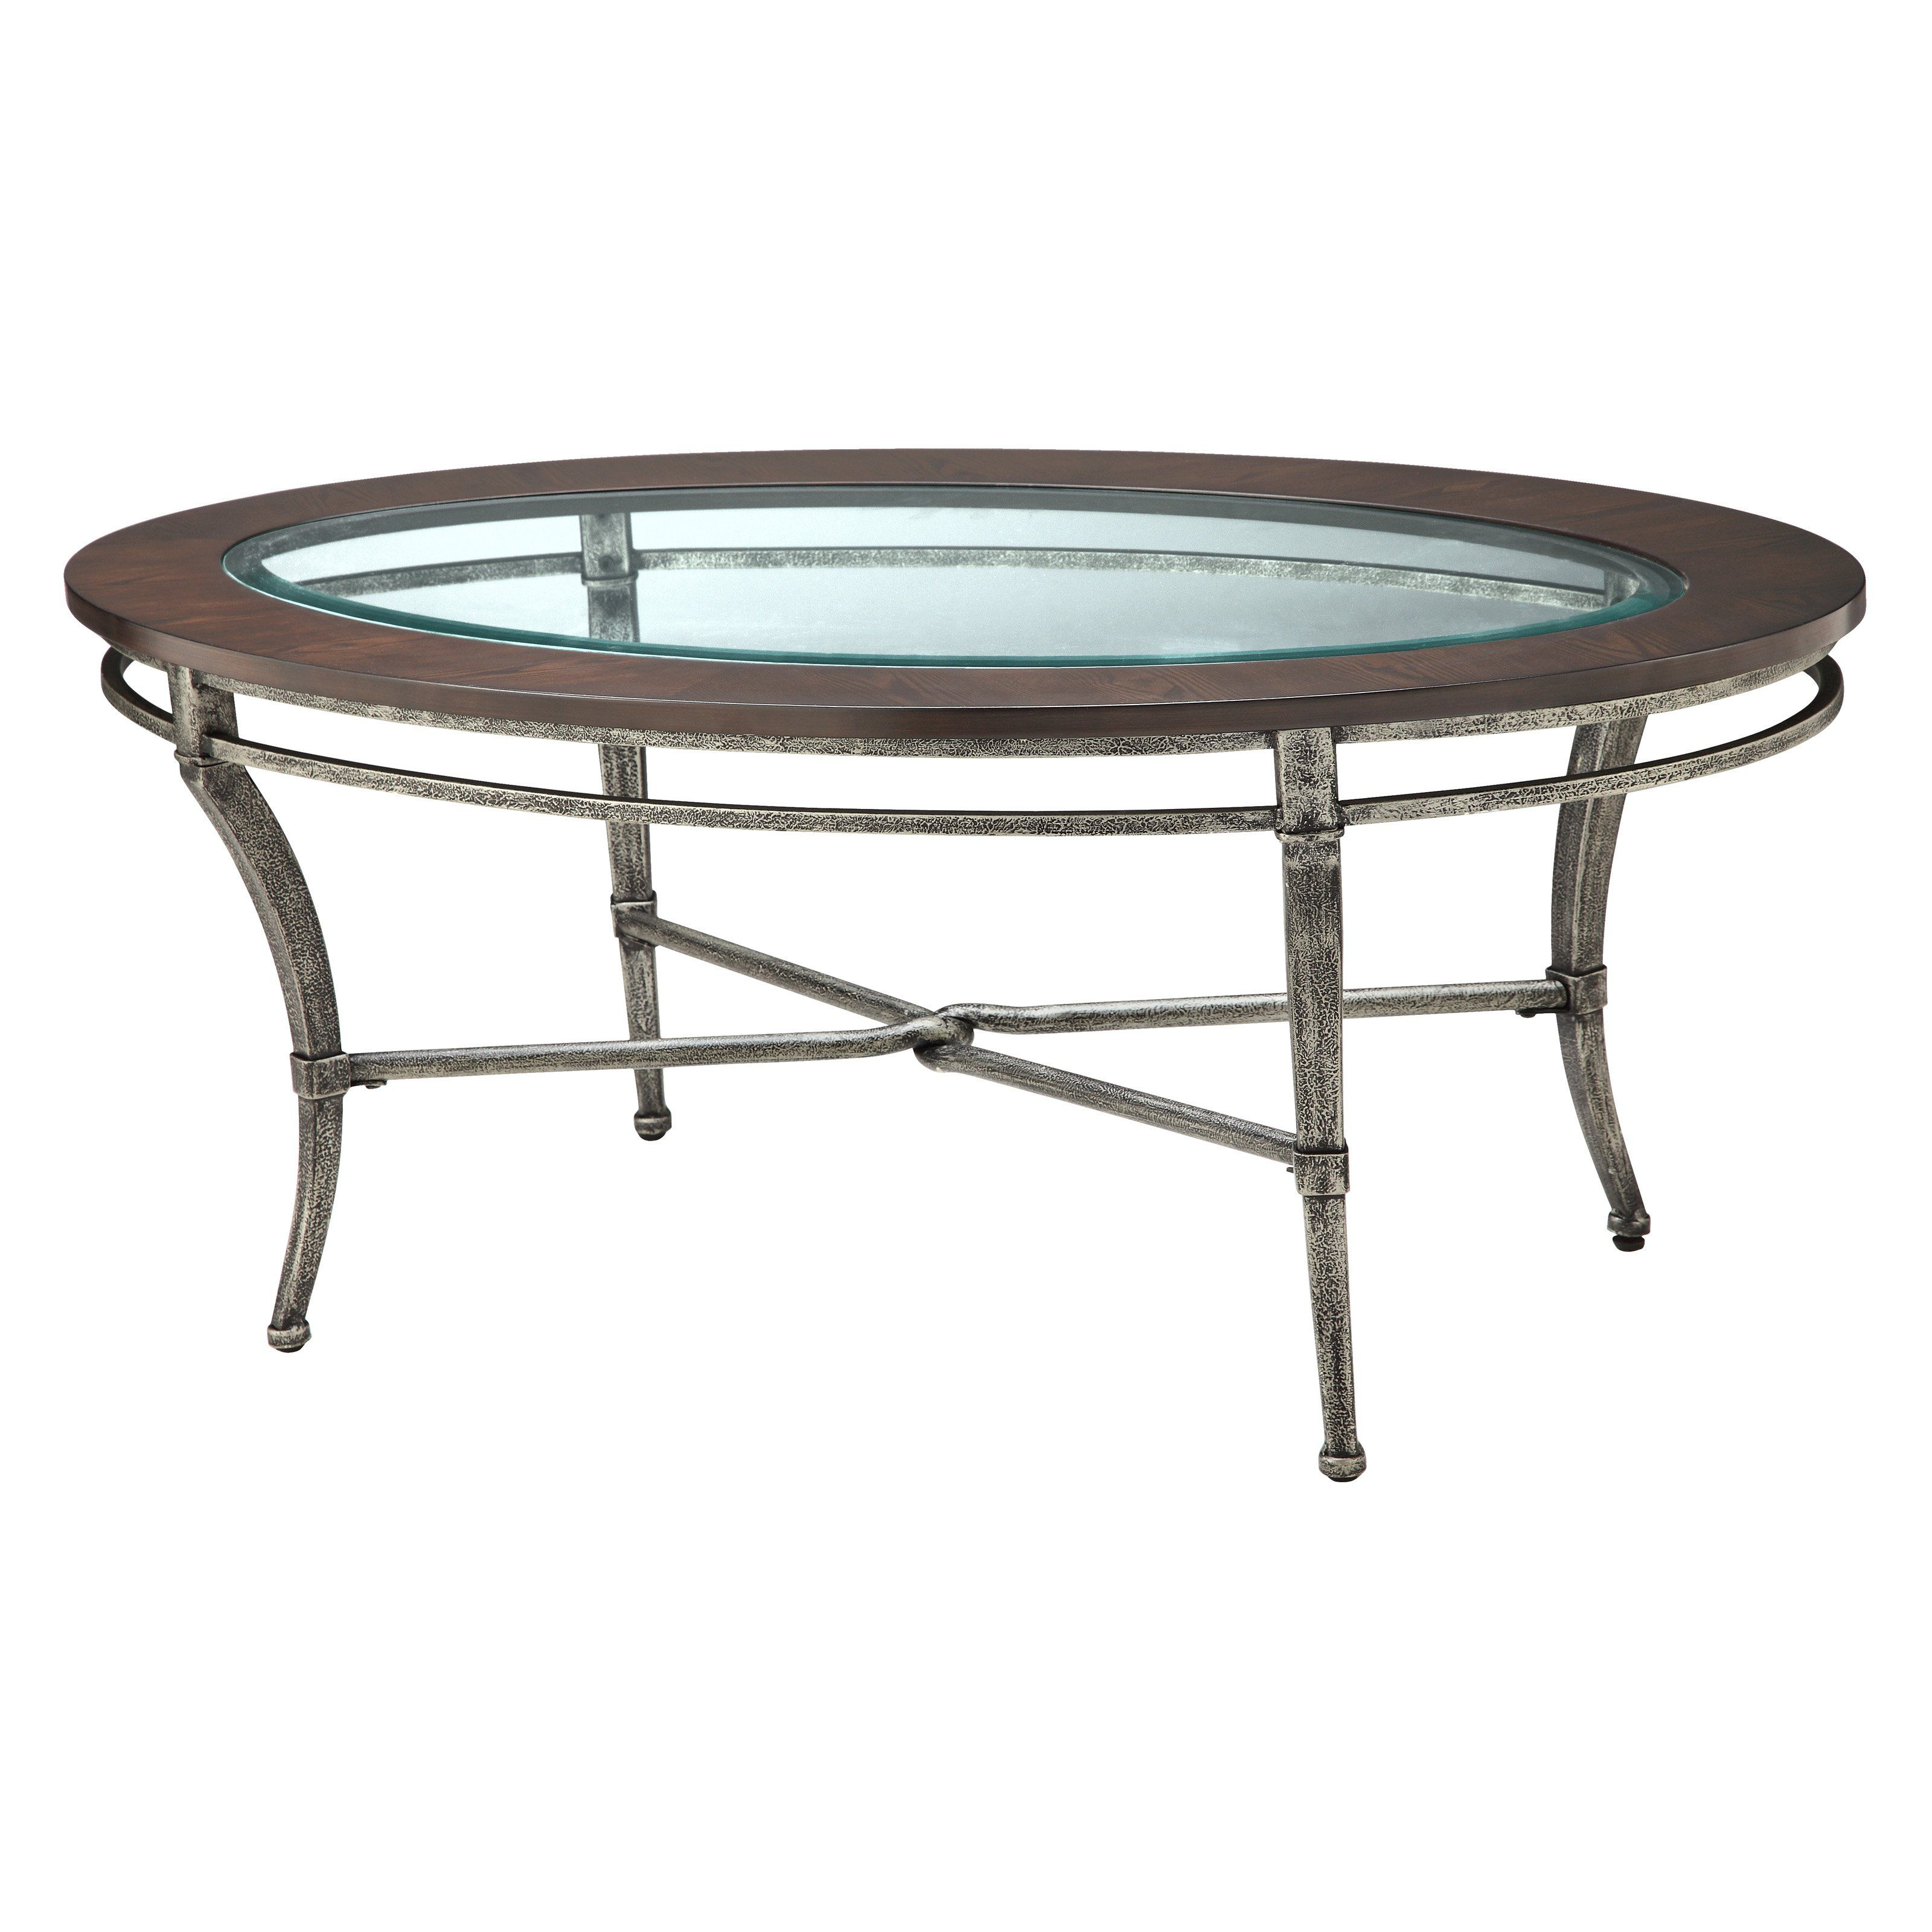 Most Recent Have To Have It. Stein World Verona Oval Metal With Wood And Glass Regarding Verona Cocktail Tables (Gallery 10 of 20)